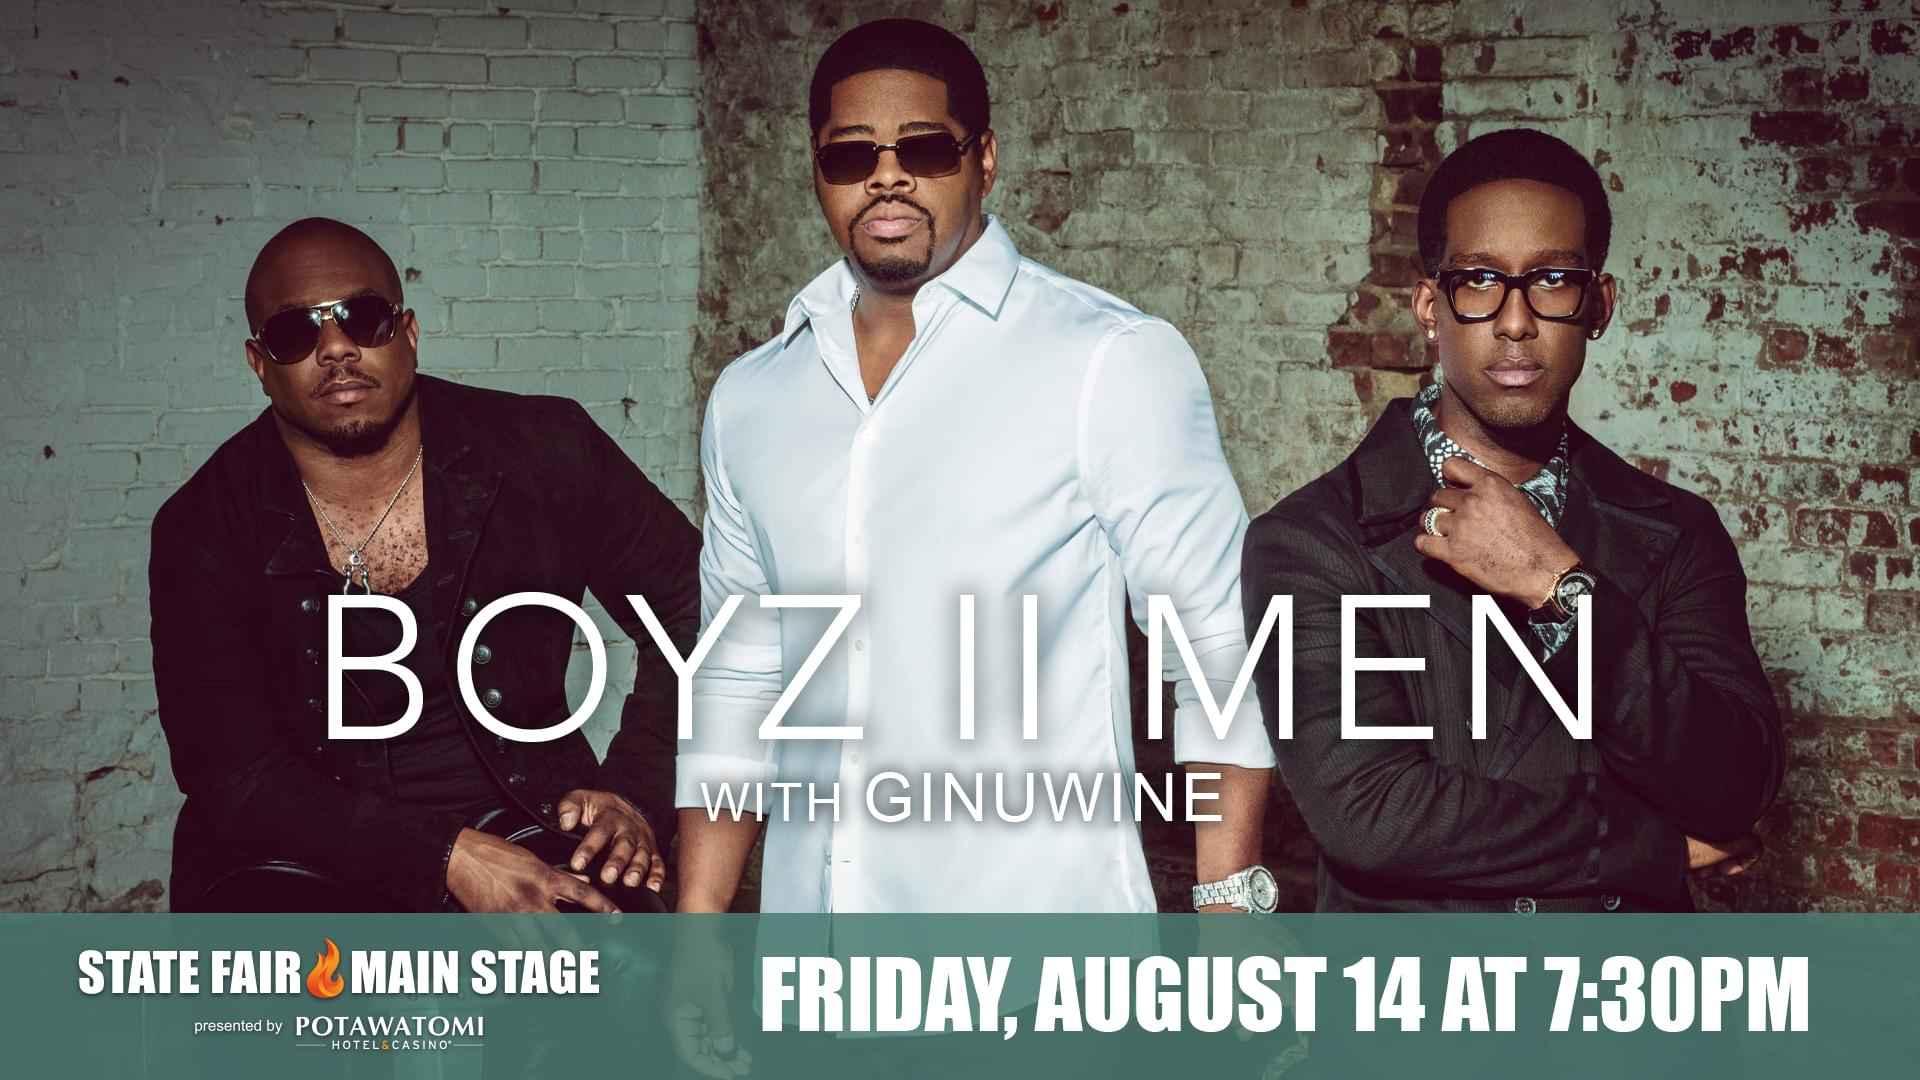 BOYZ II MEN coming to the Wisconsin State Fair in August!